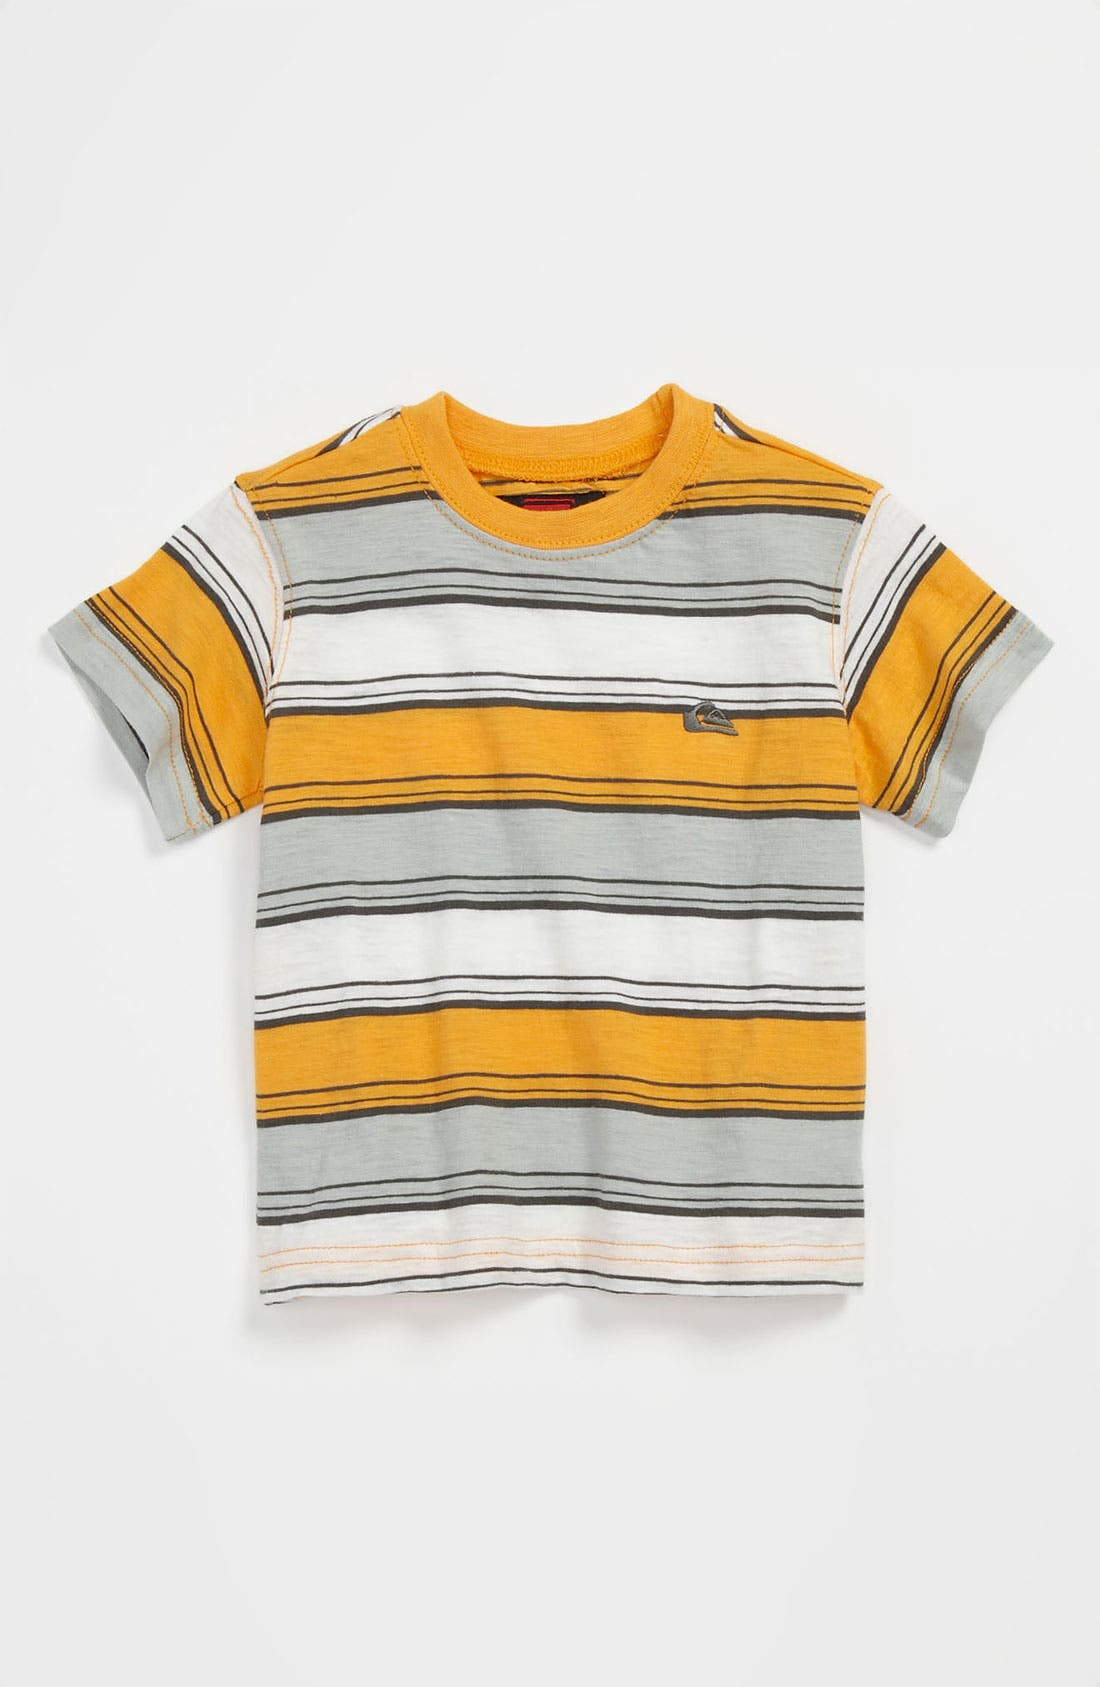 Alternate Image 1 Selected - Quiksilver 'Downside' Stripe Shirt (Baby)